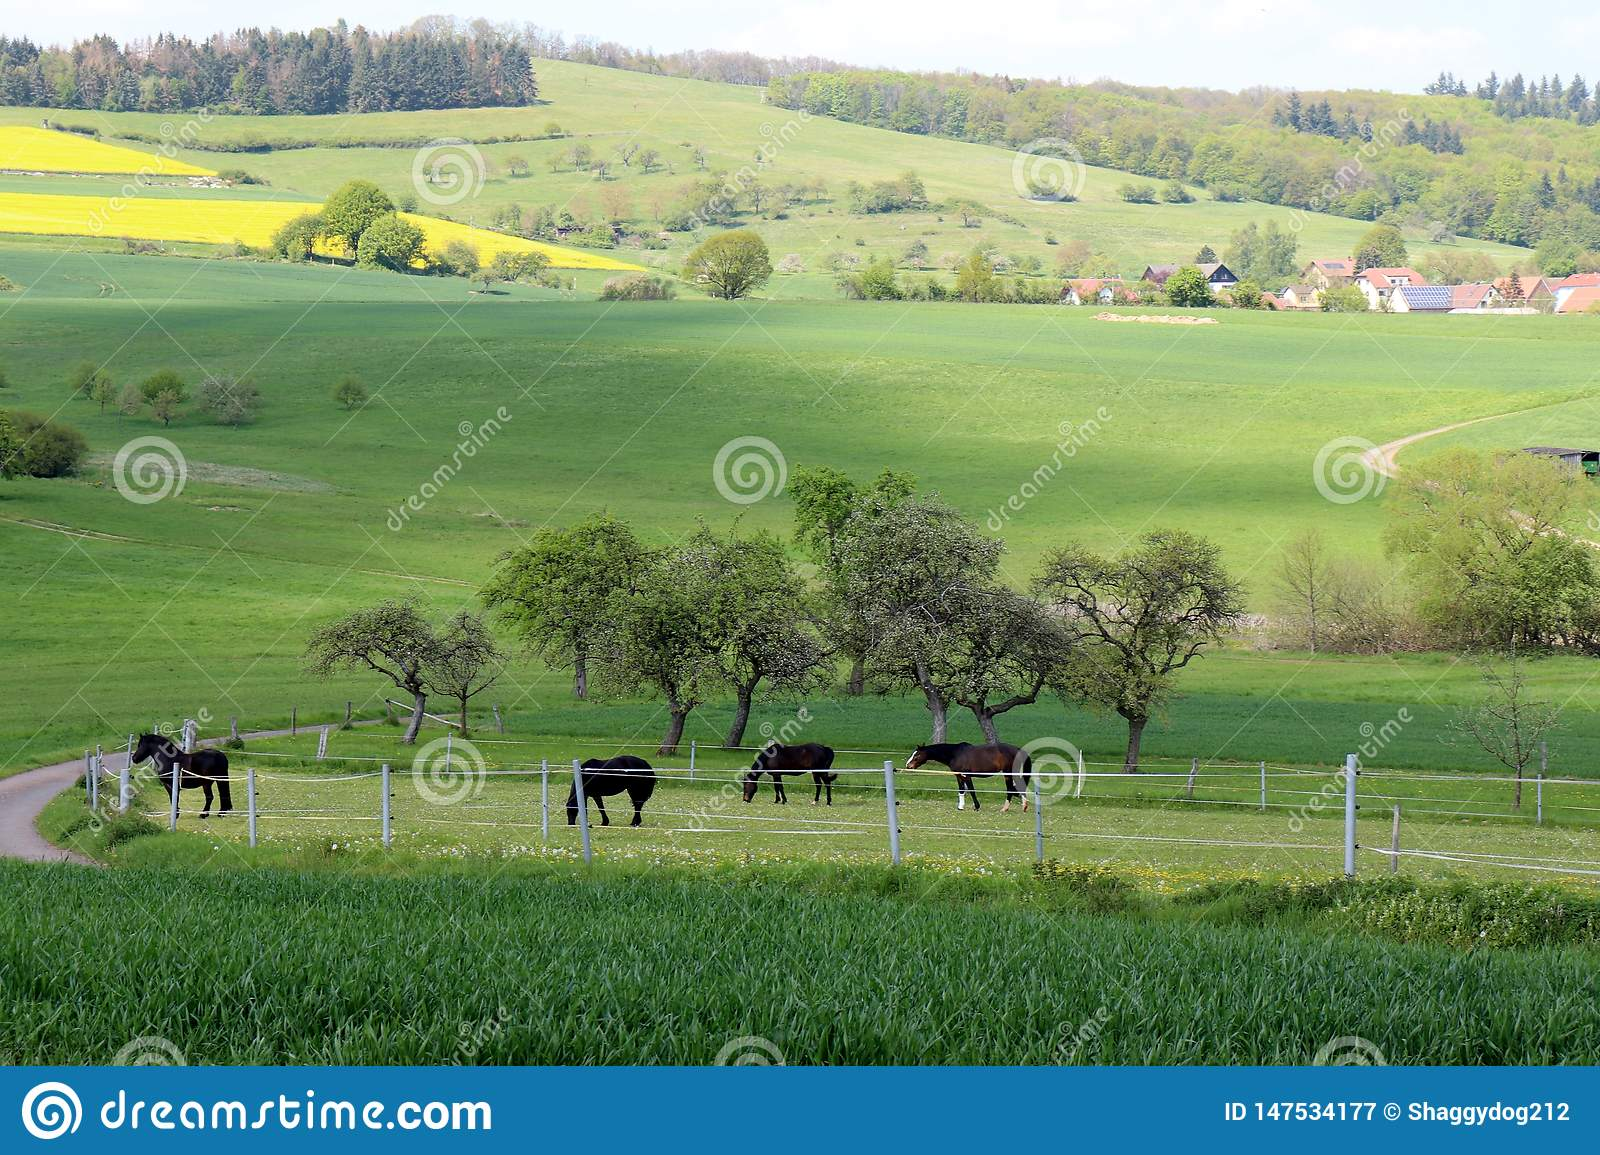 Horses grazing in a pasture in Germany